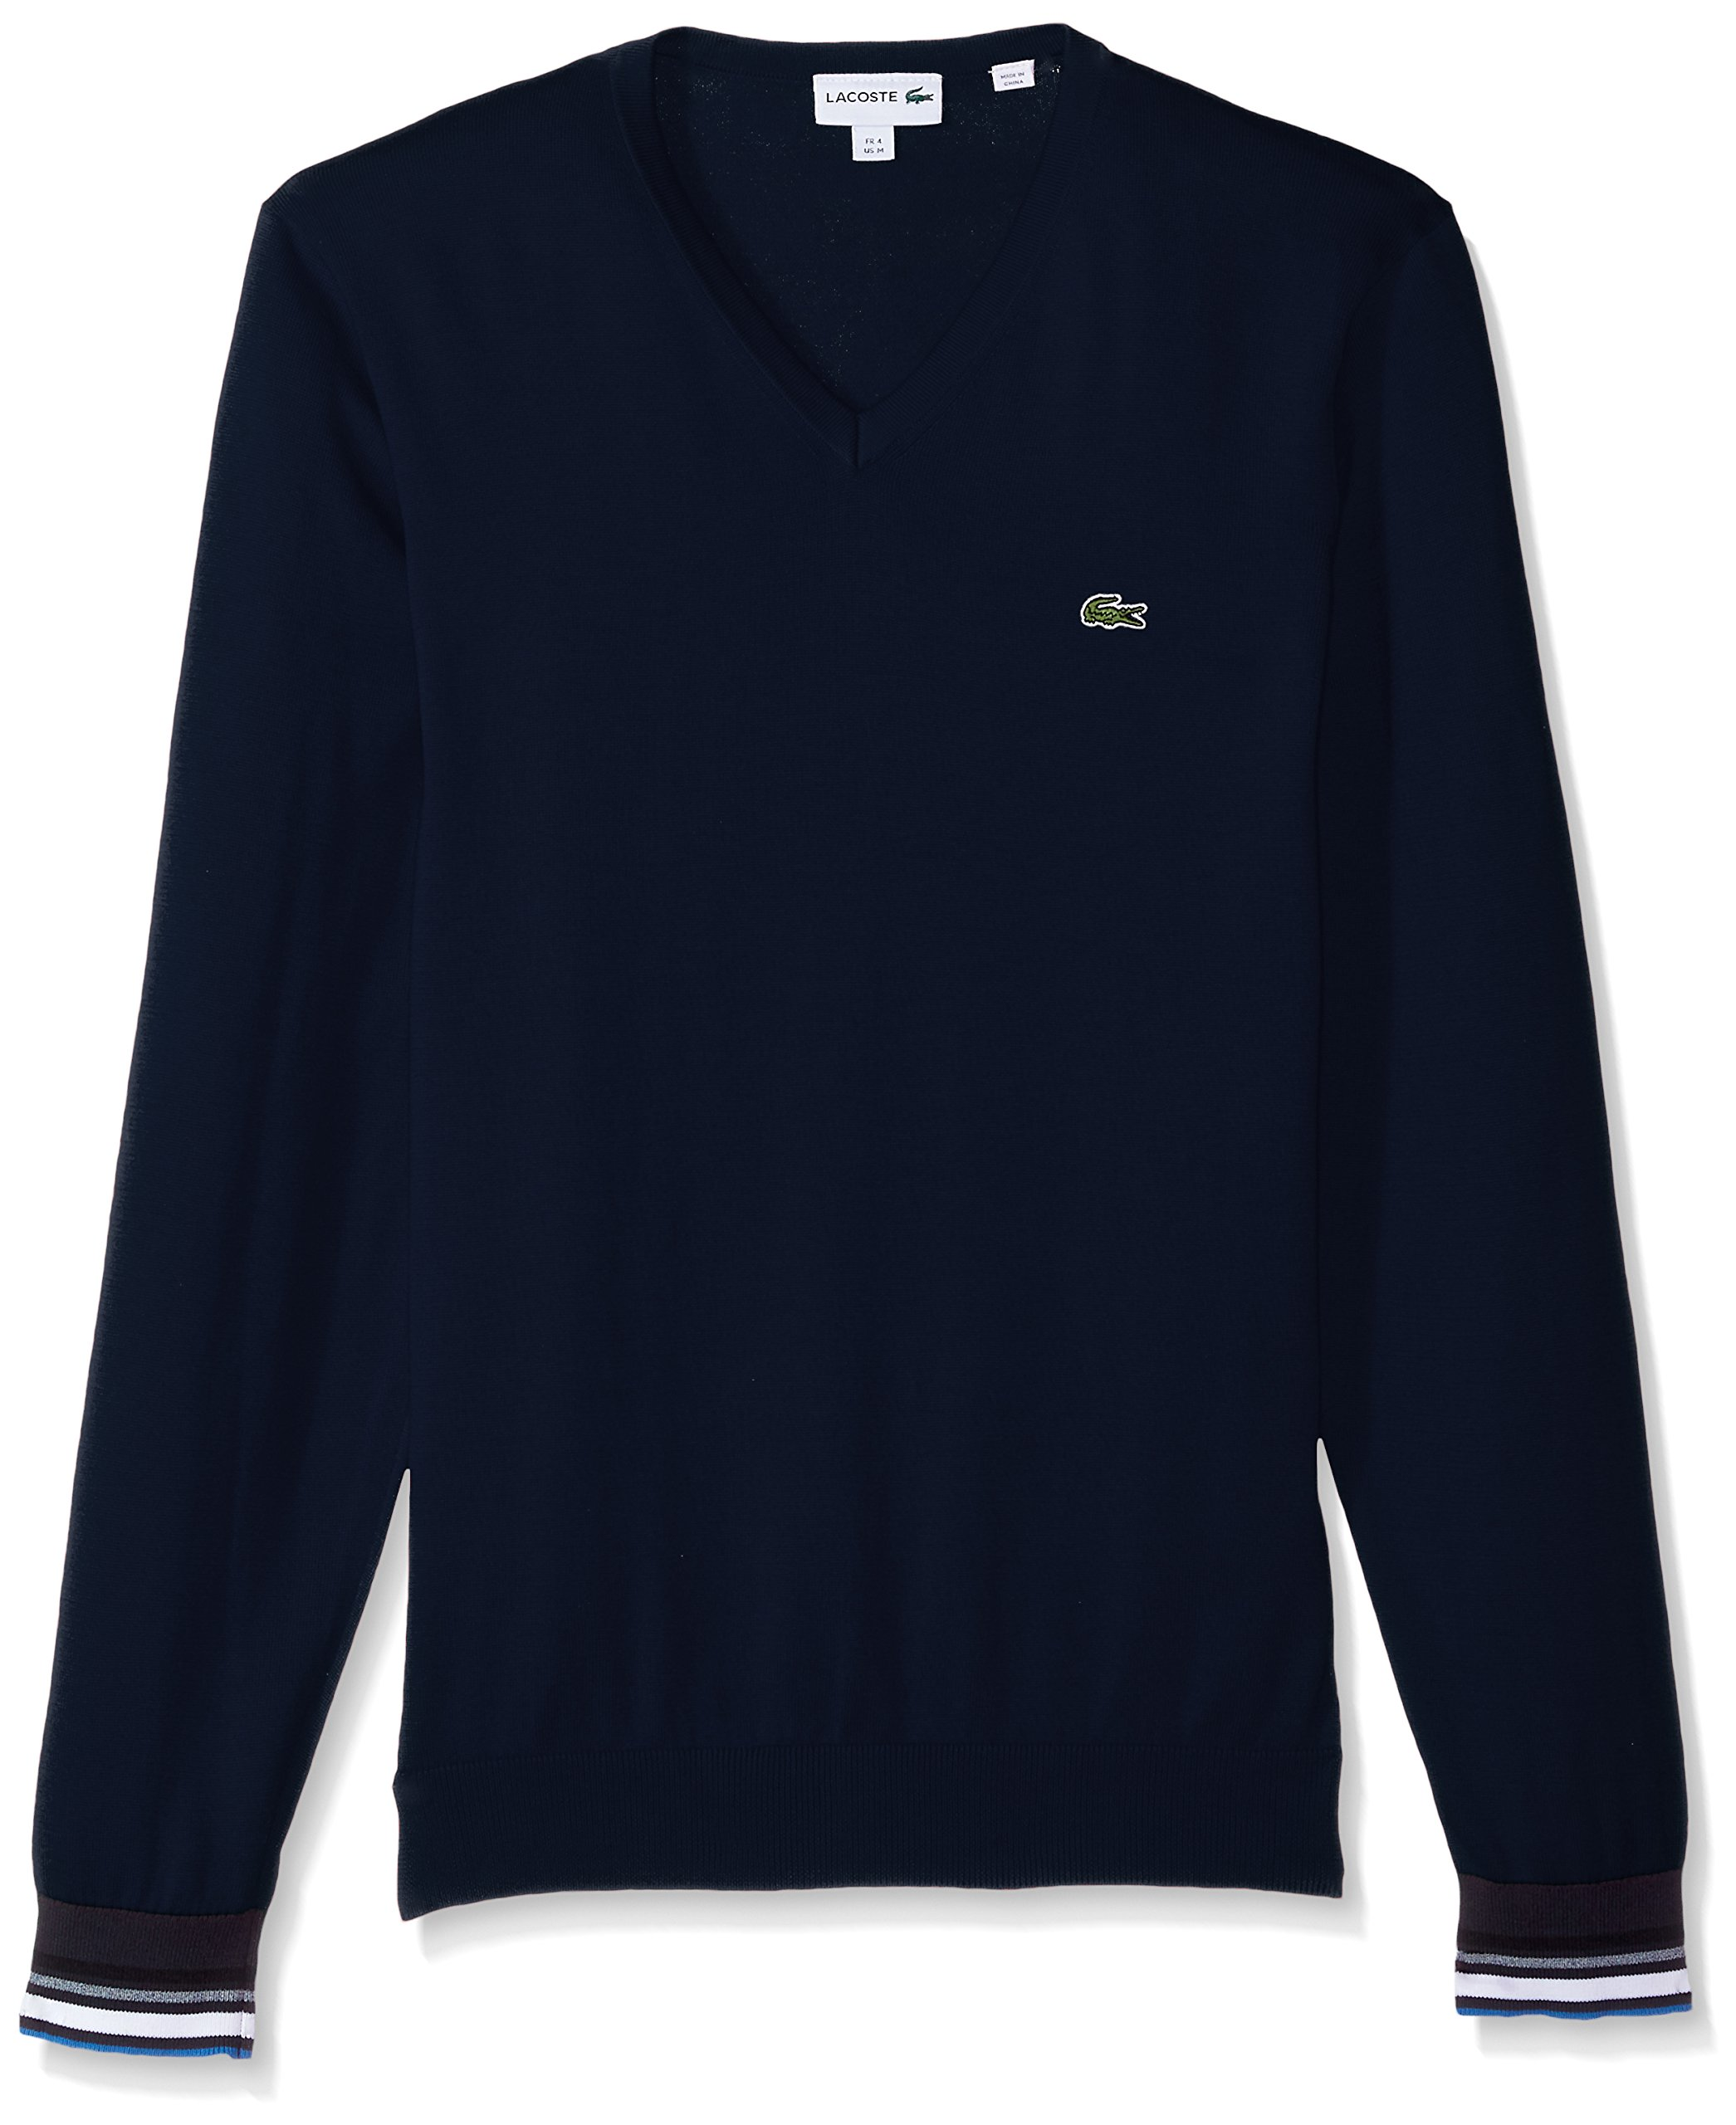 Lacoste Men's Semi Fancy Cotton Jersey V Neck Sweater, Navy Blue, 5